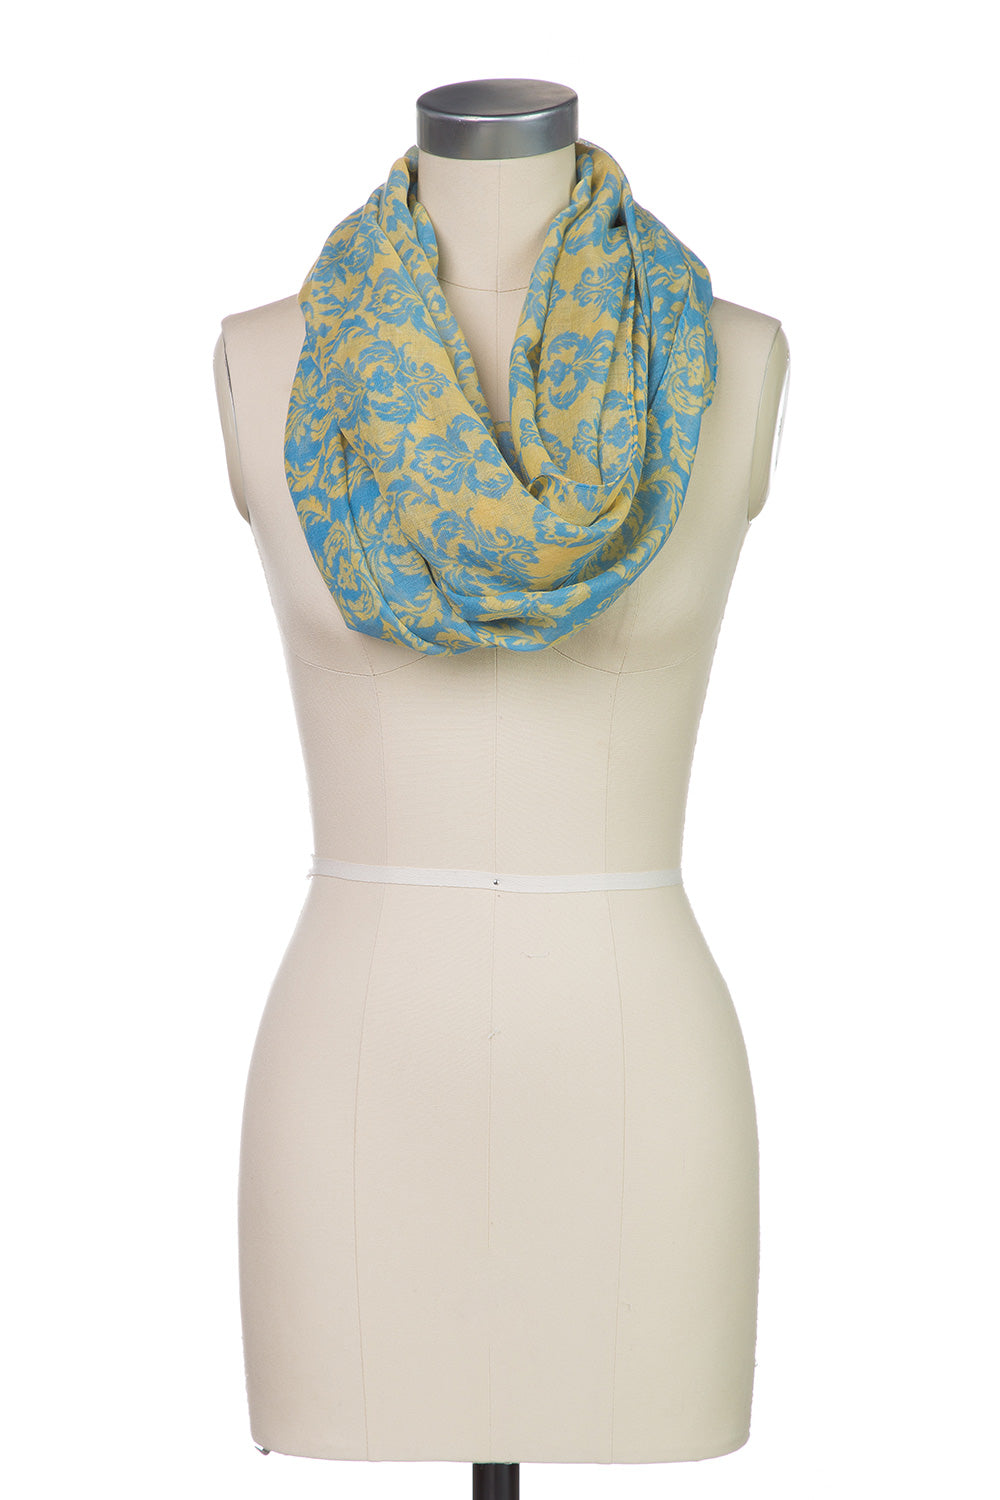 Type 2 Infinite Damask Scarf